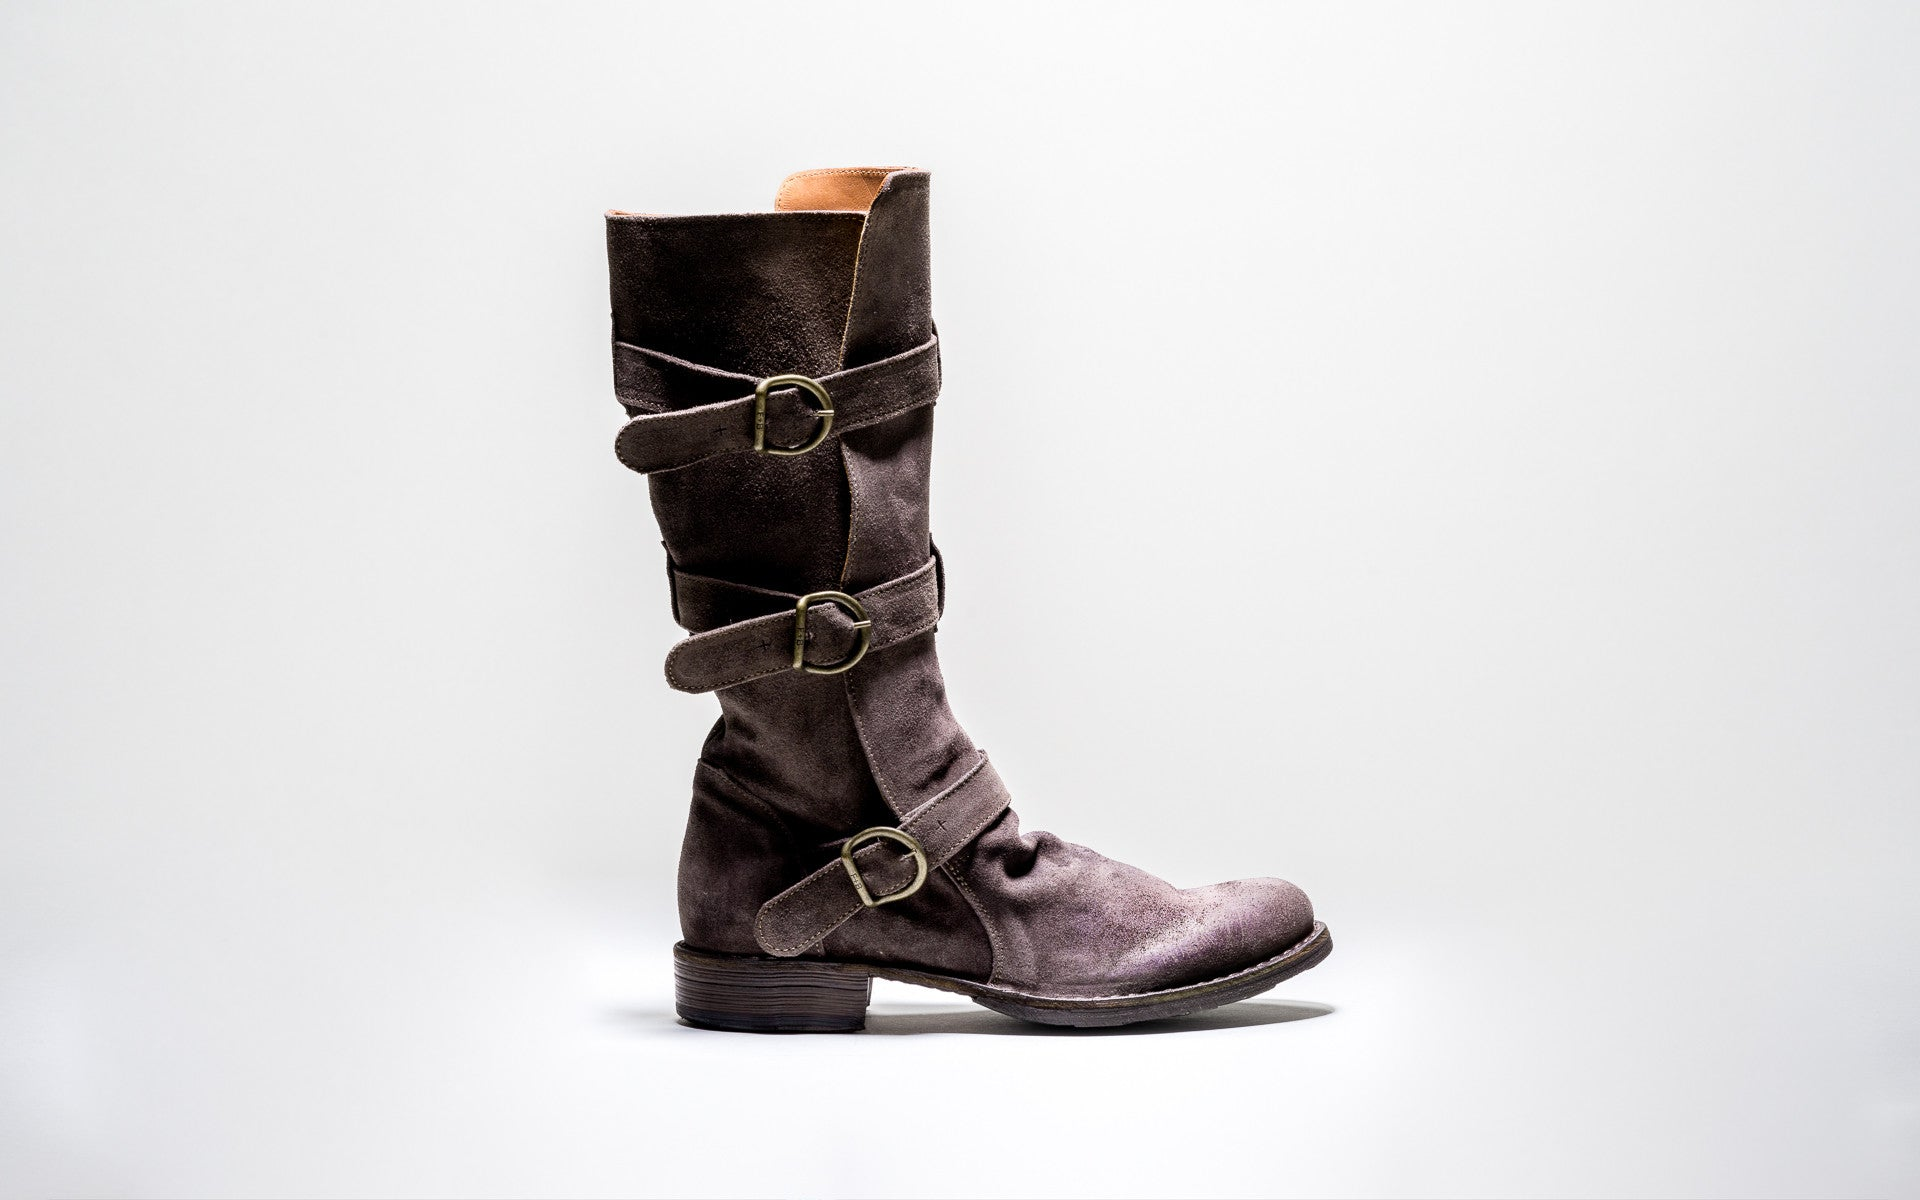 Eternity_7040_TallBoot_Coffee_Suede